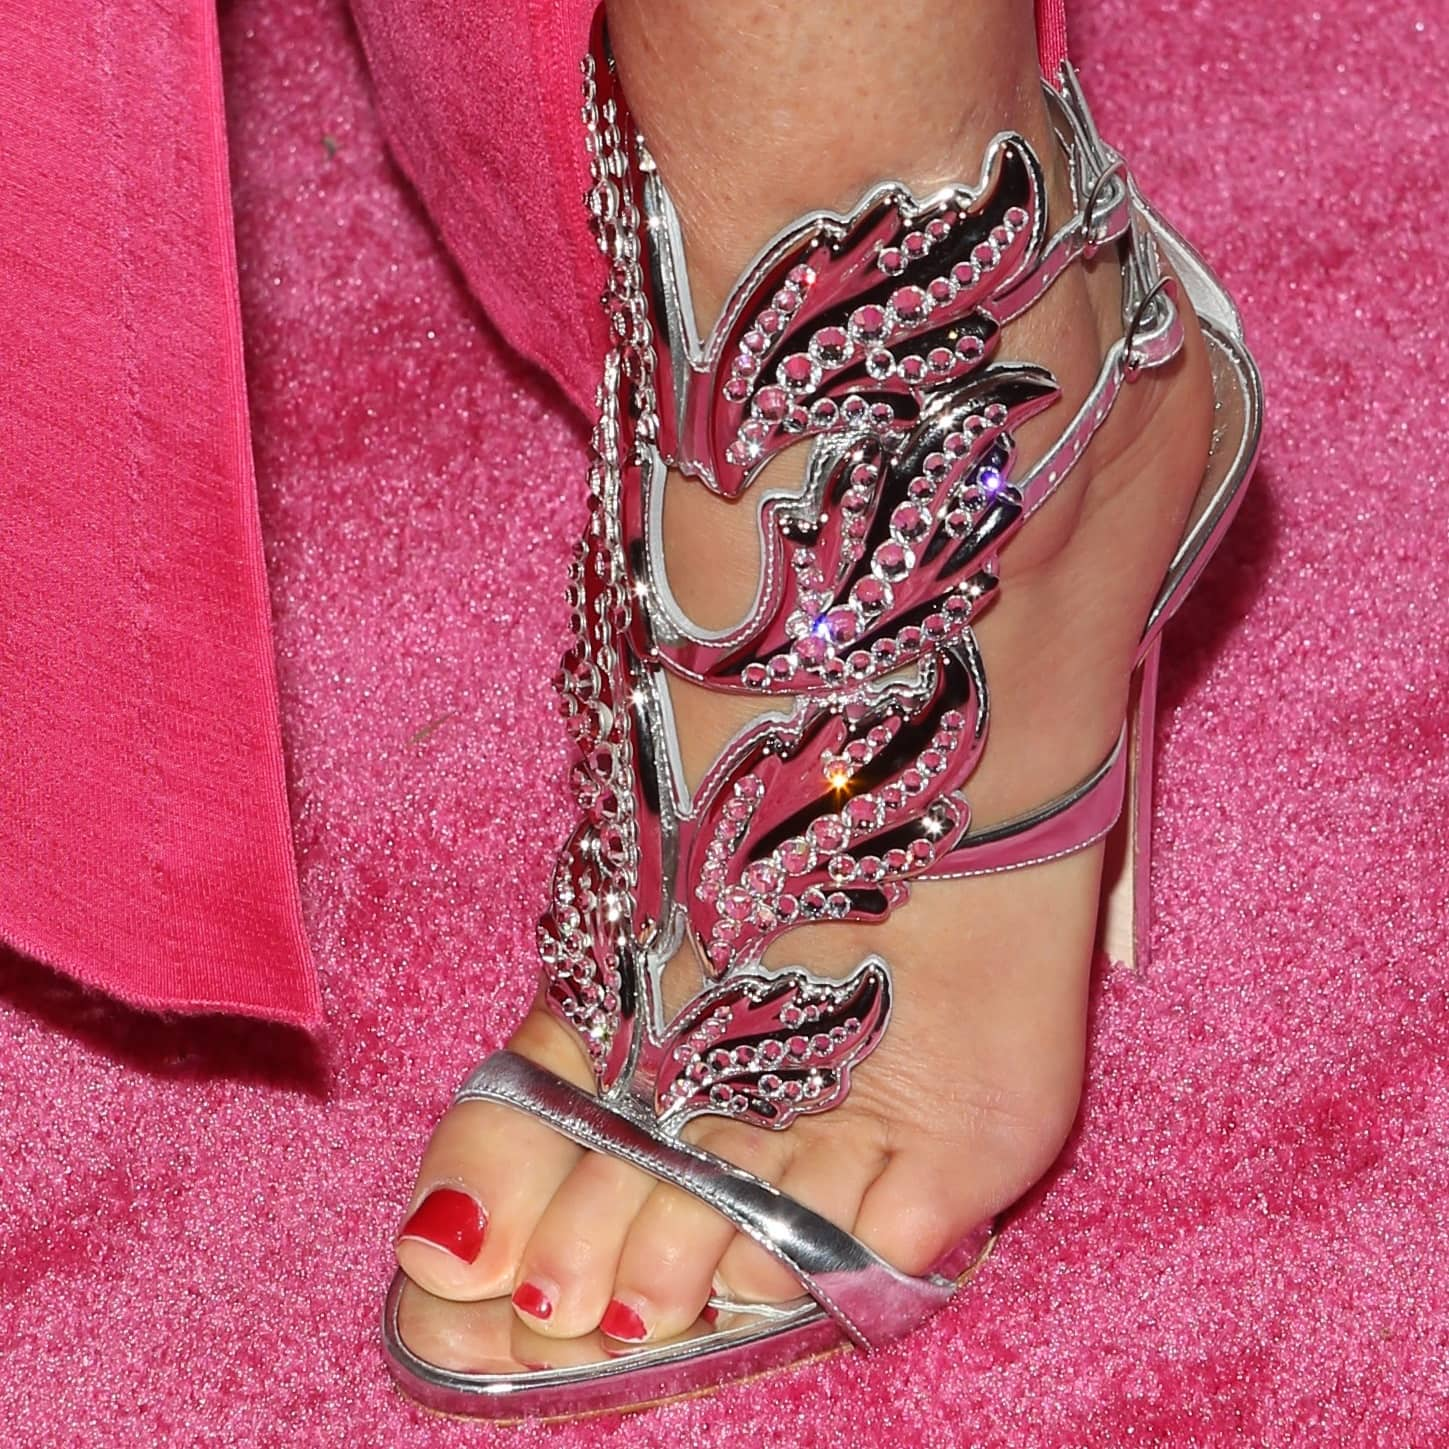 Dee Ocleppo Hilfiger shows off her feet in silver Cruel crystal sandal with crystal wing embellishment